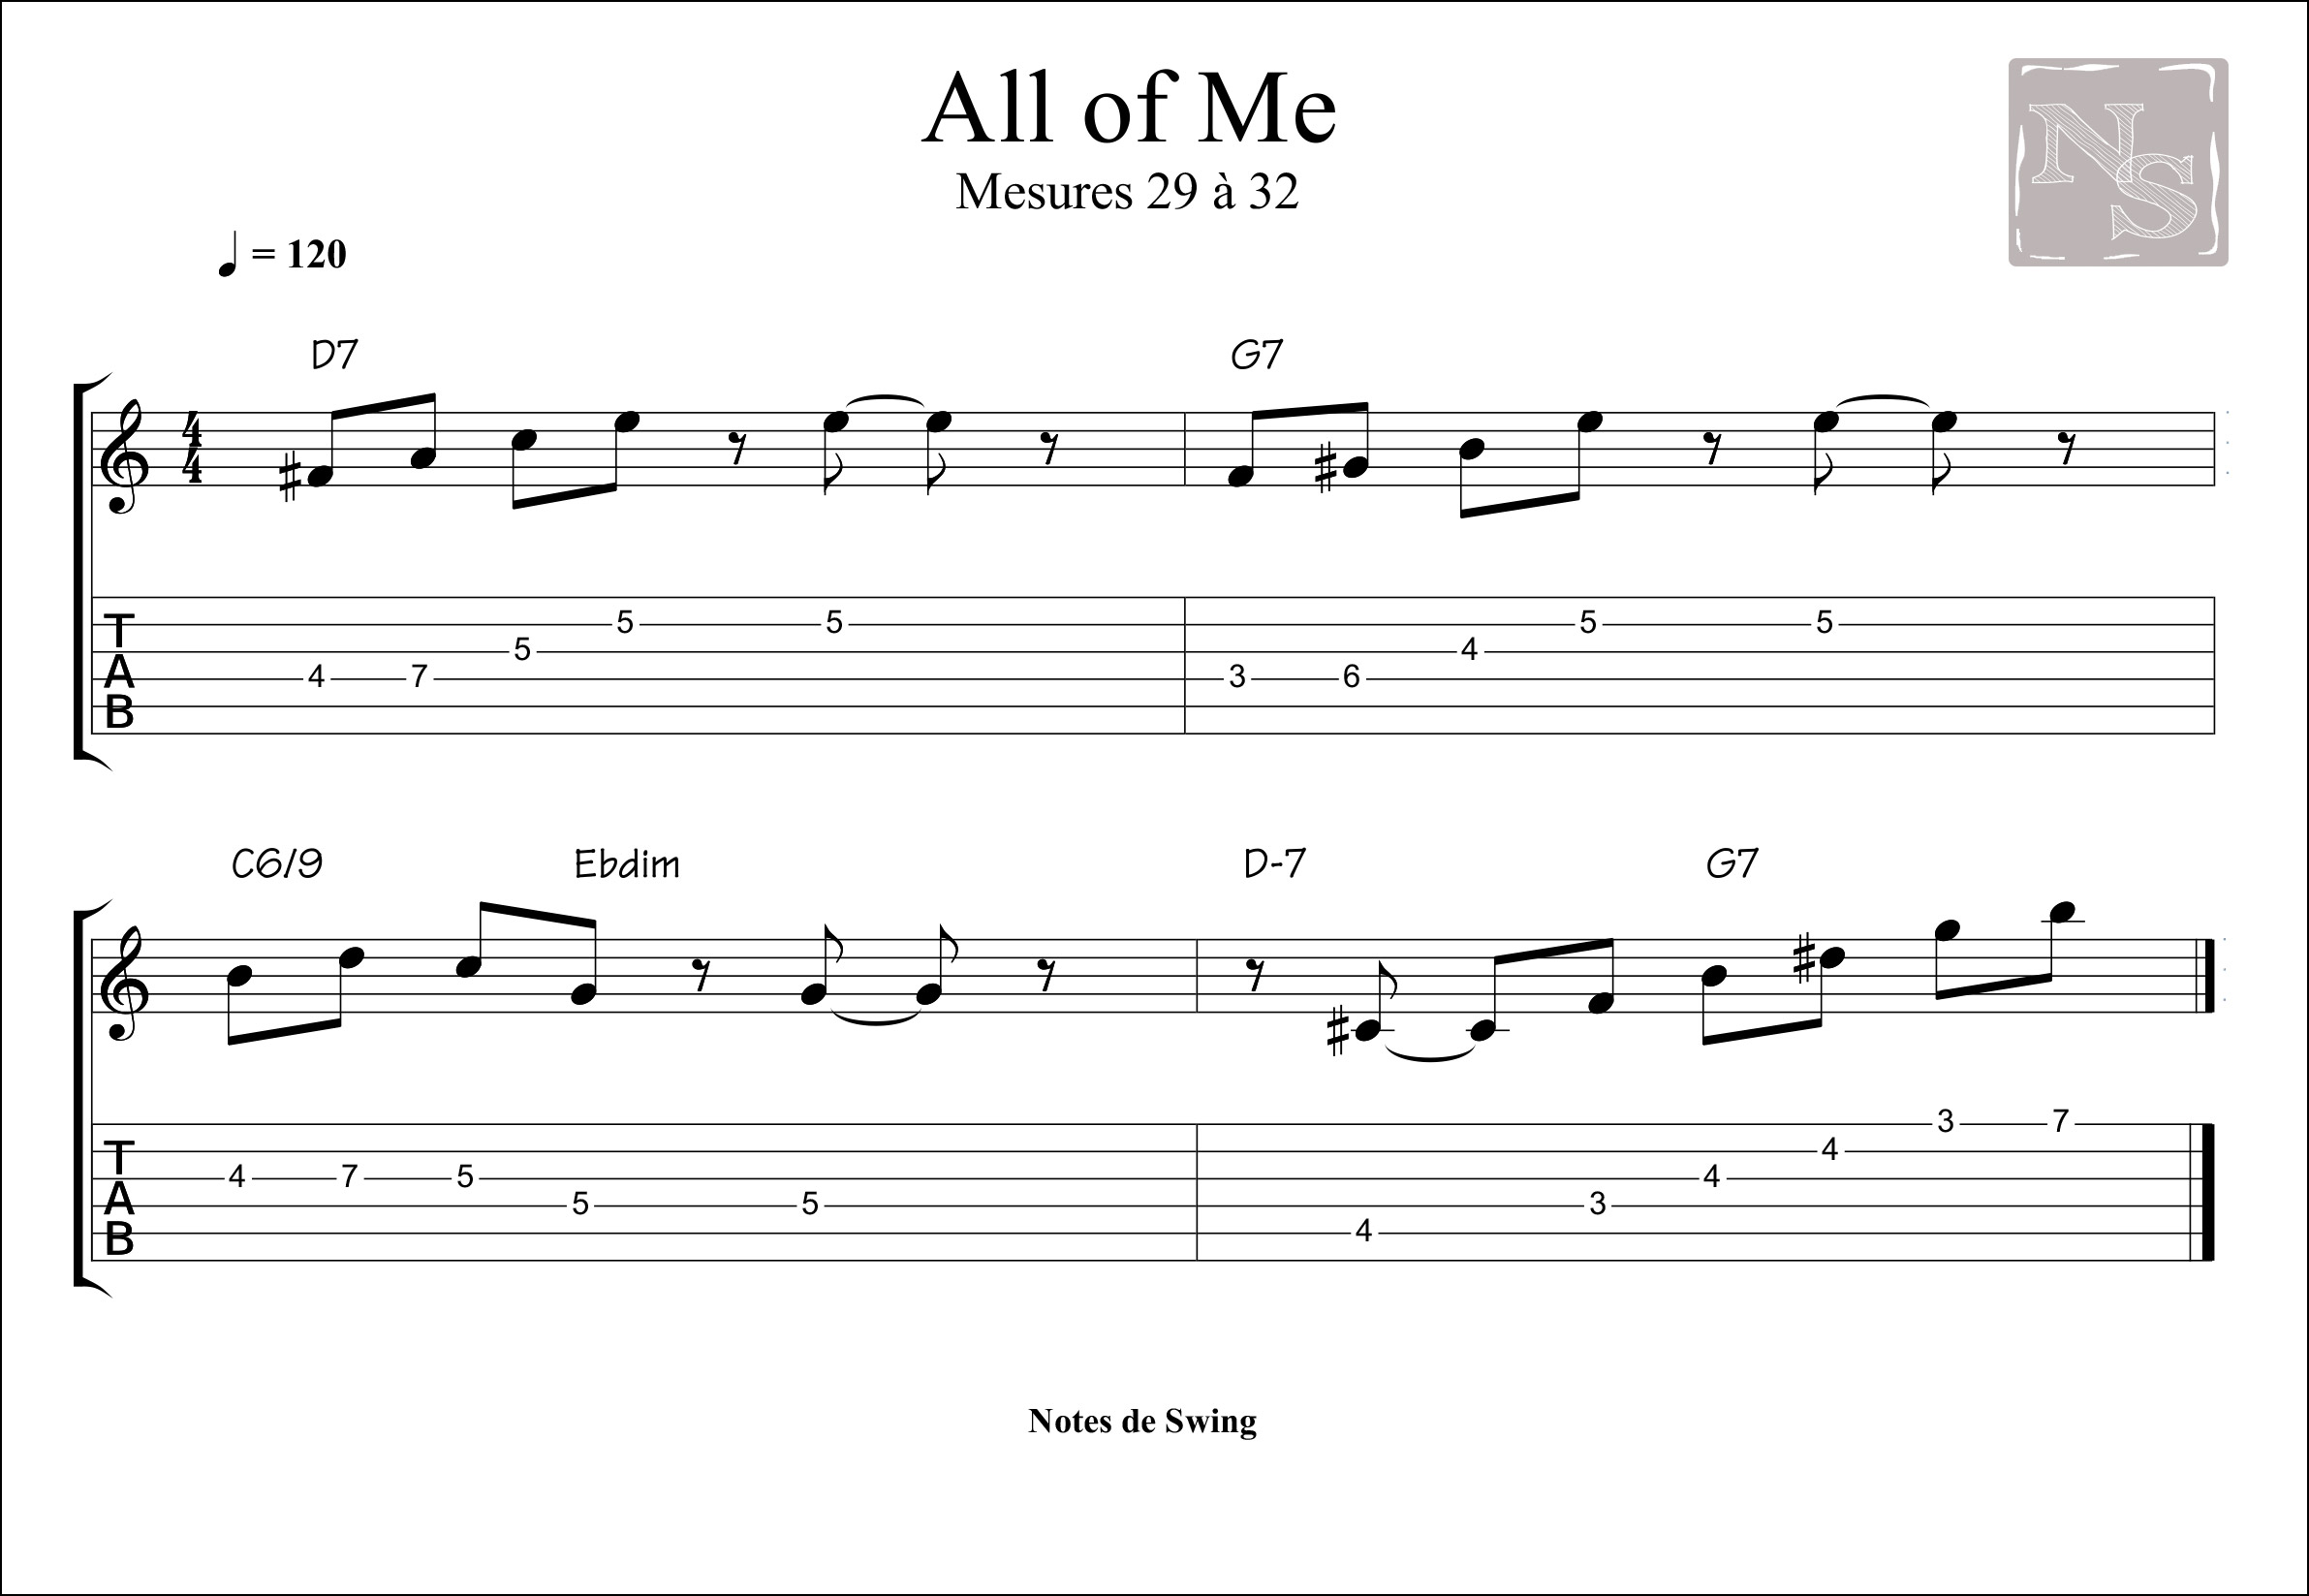 ALL OF ME MESURE 29 a 32